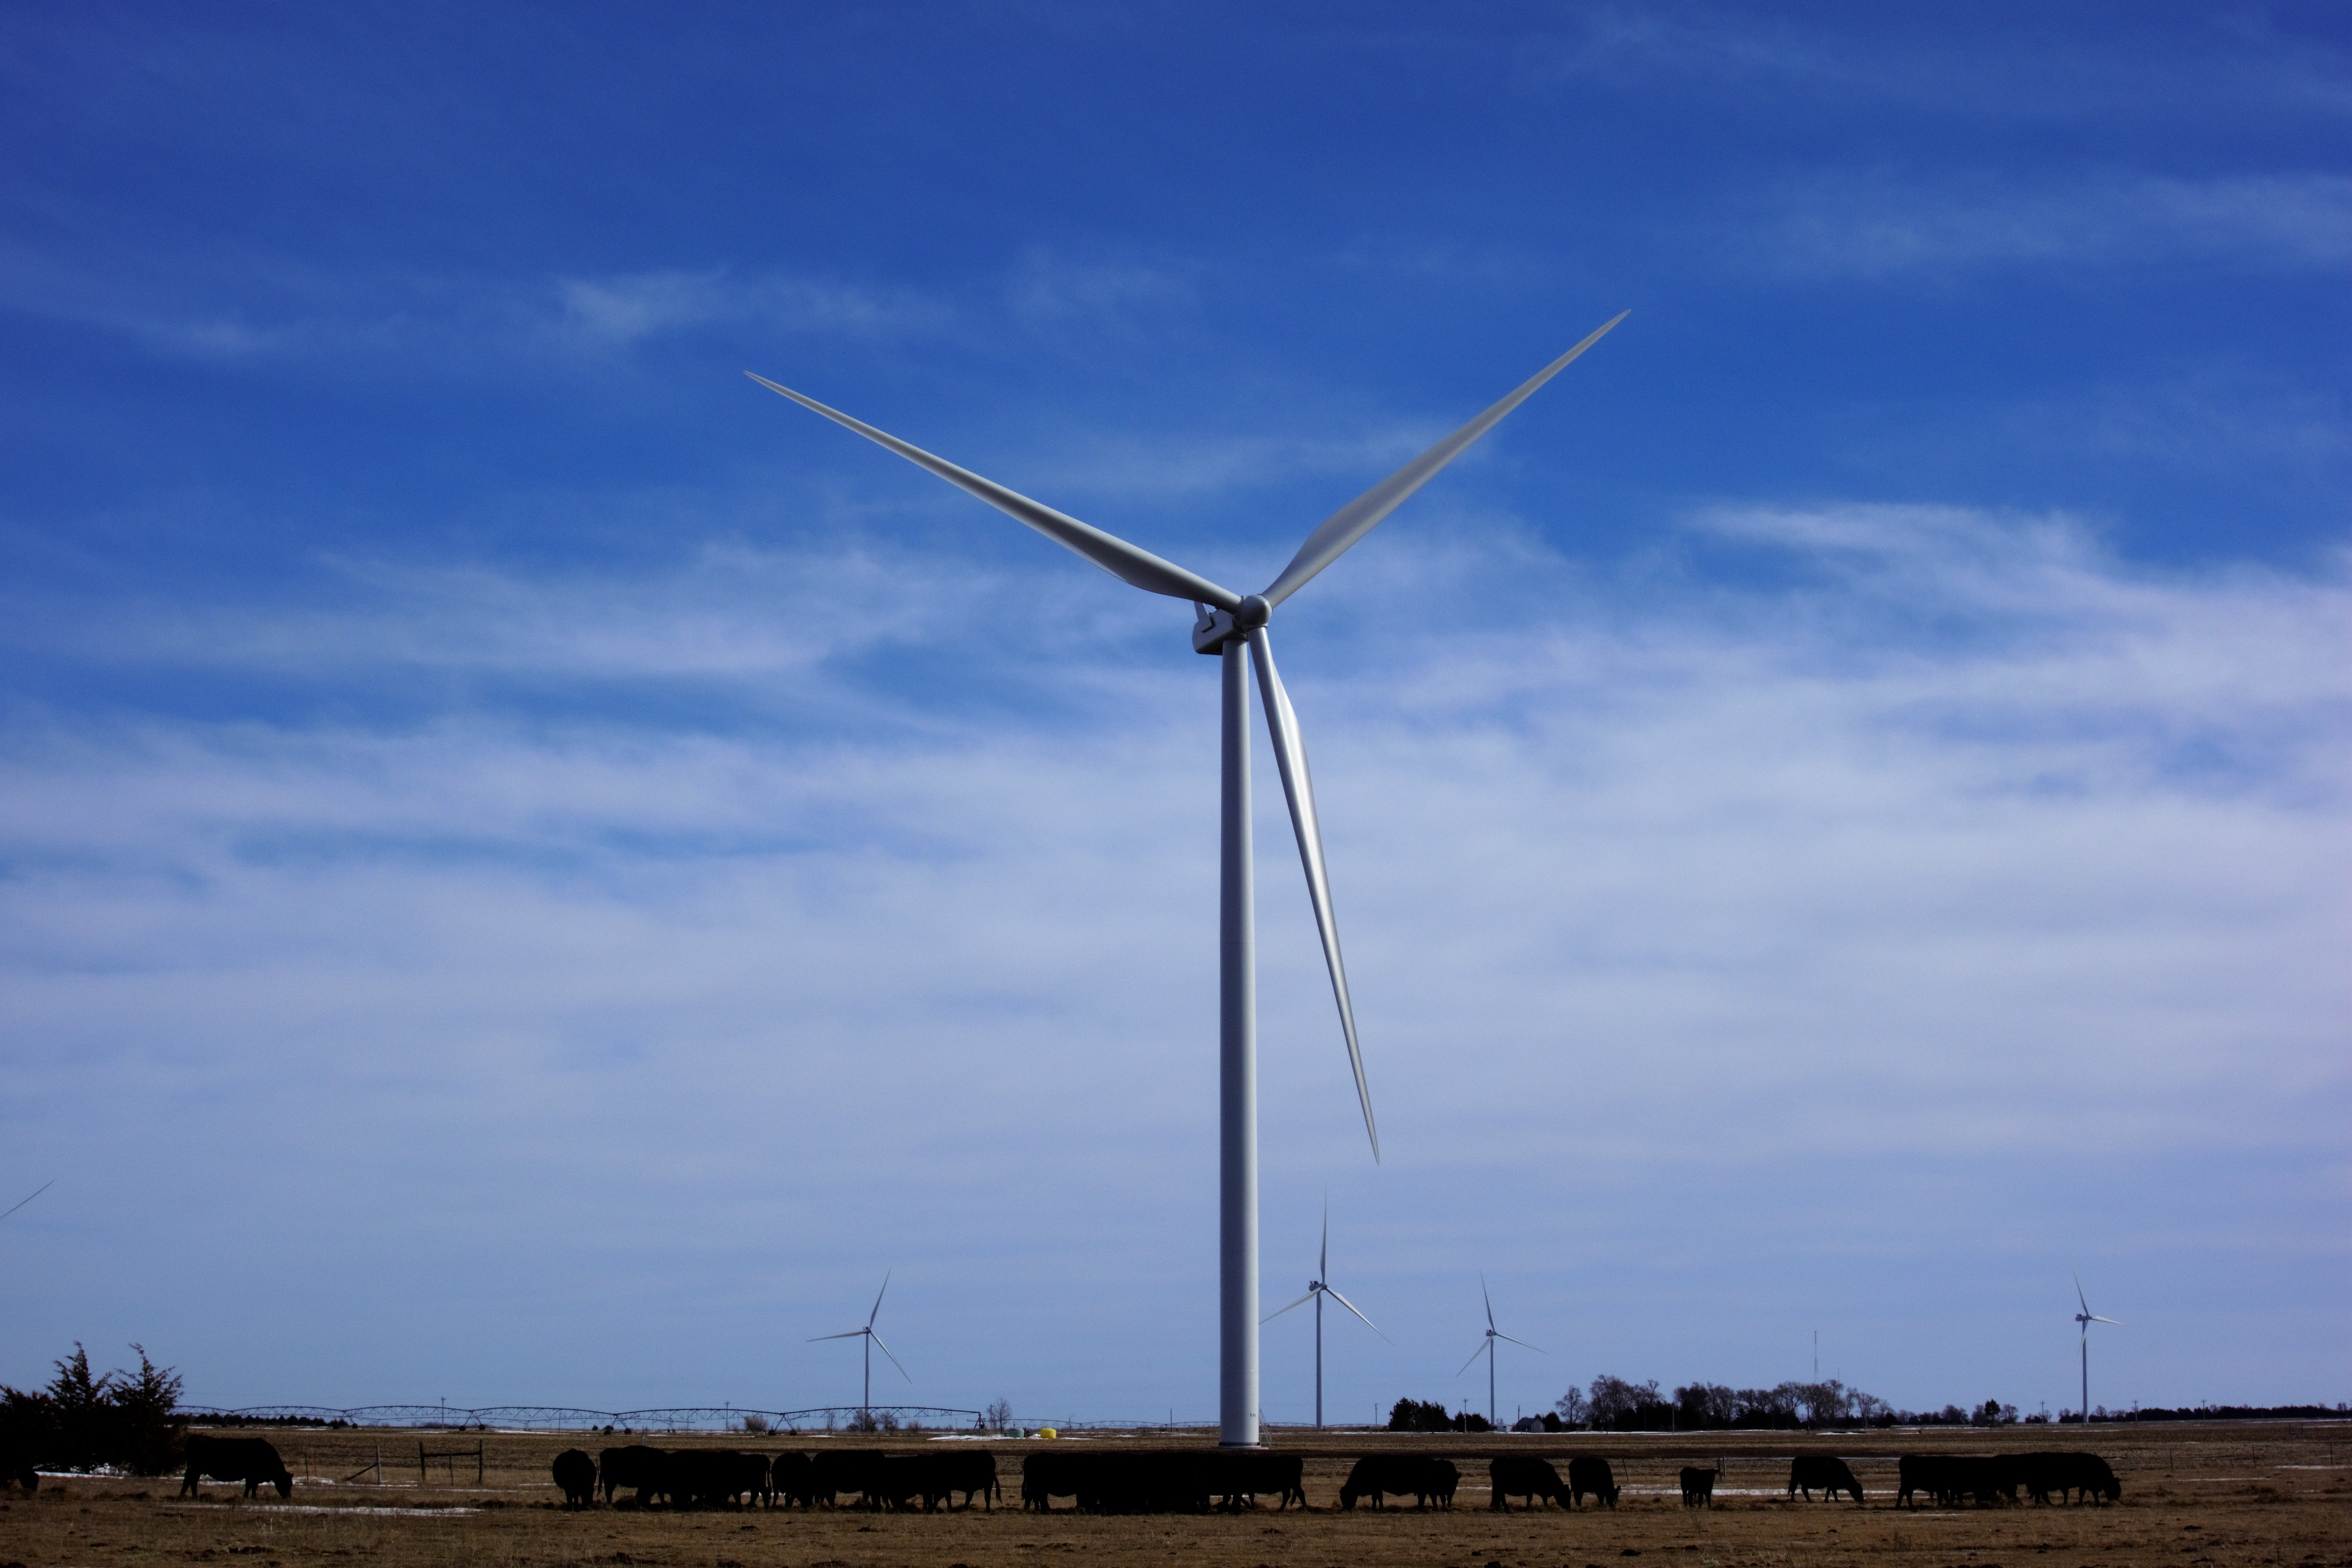 <p>In addition to the economic benefits, hosting wind turbines allows Mike Zakrzewski to better care for his land and cattle. Photo by Mike Zakrzewski</p>